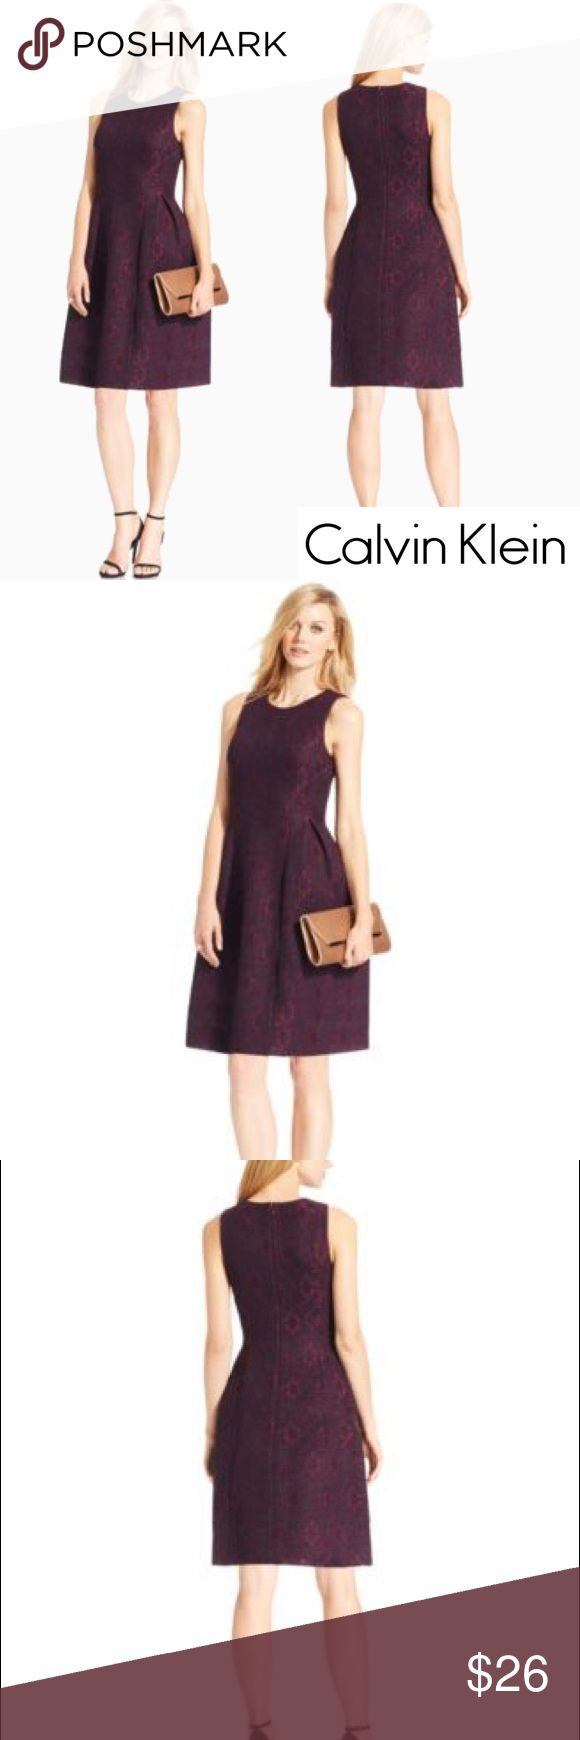 Calvin Klein Plum Lace Floral Dress Is in excellent condition and is a size 6 - the length is about 36 inches, there are no stains, rips, or tears and the zipper works great. There are one or two tiny strings. Shell: 70% polyester, 30% nylon  Lining: 100% polyester. Great for a date night, a special event, or a night out! Calvin Klein Dresses